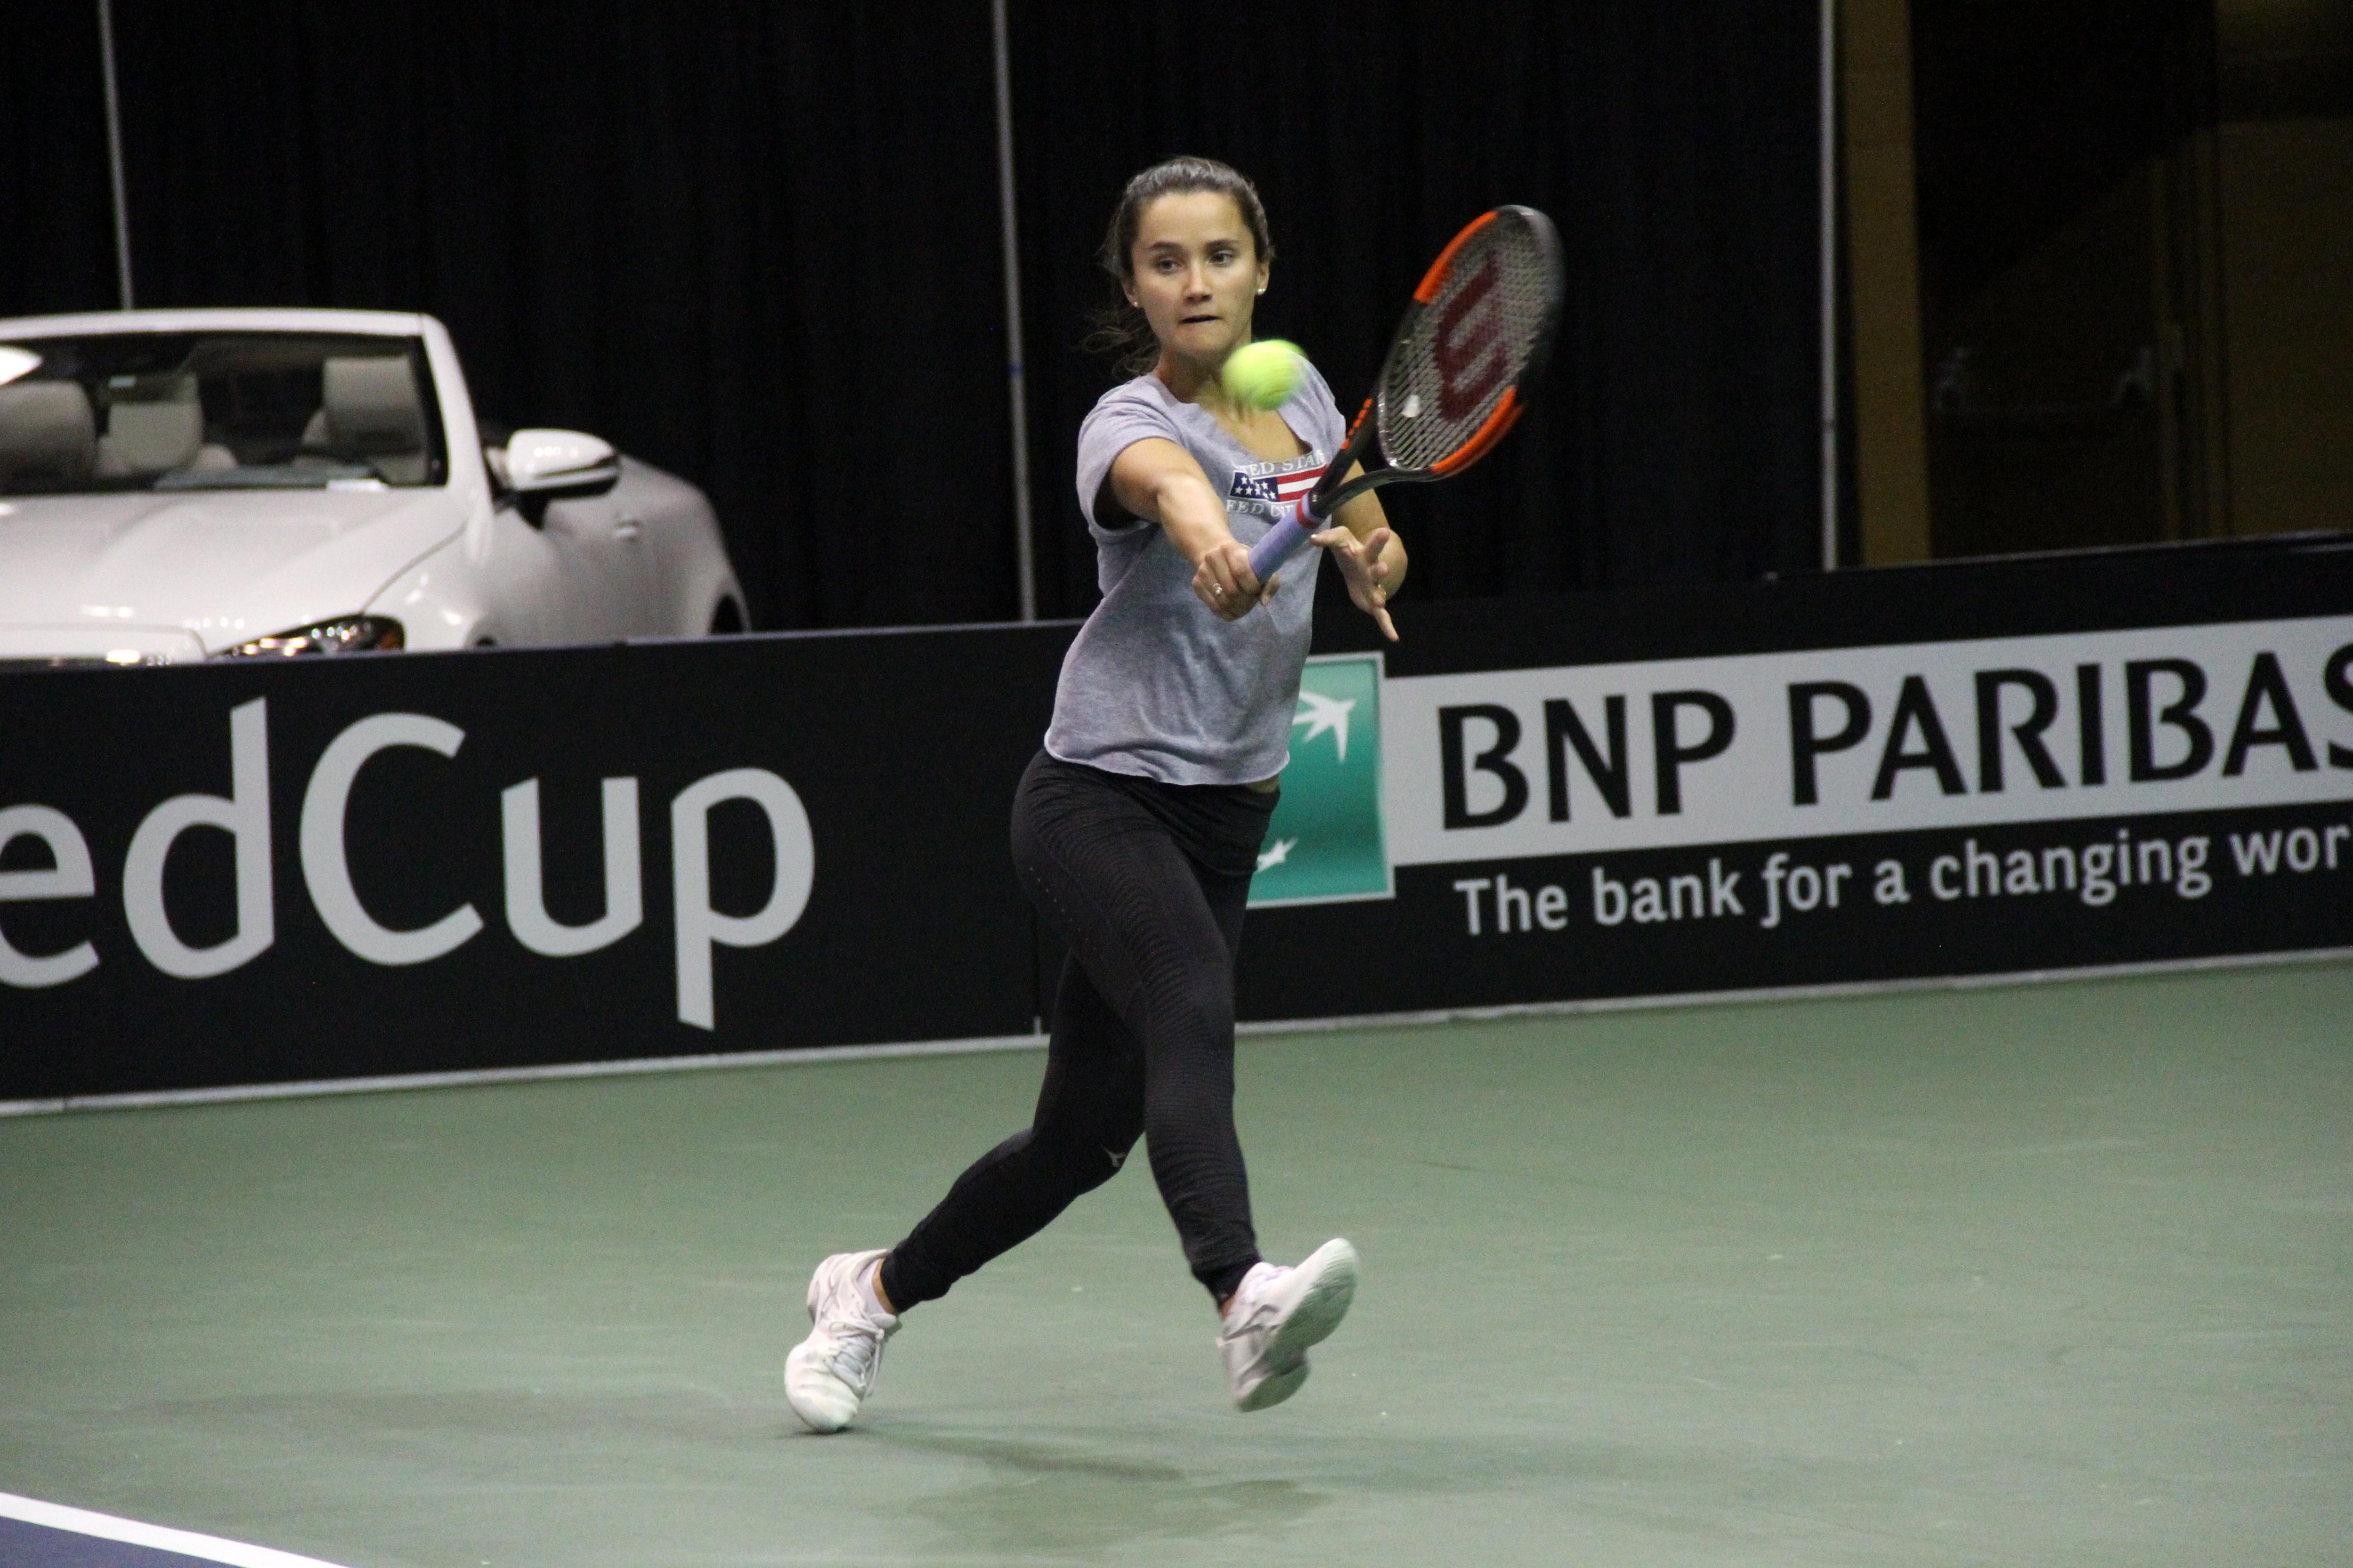 <p>Lauren Davis practices at the US Cellular Center on Feb. 7, 2018, ahead of the Fed Cup. (Photo credit: WLOS Staff)</p>